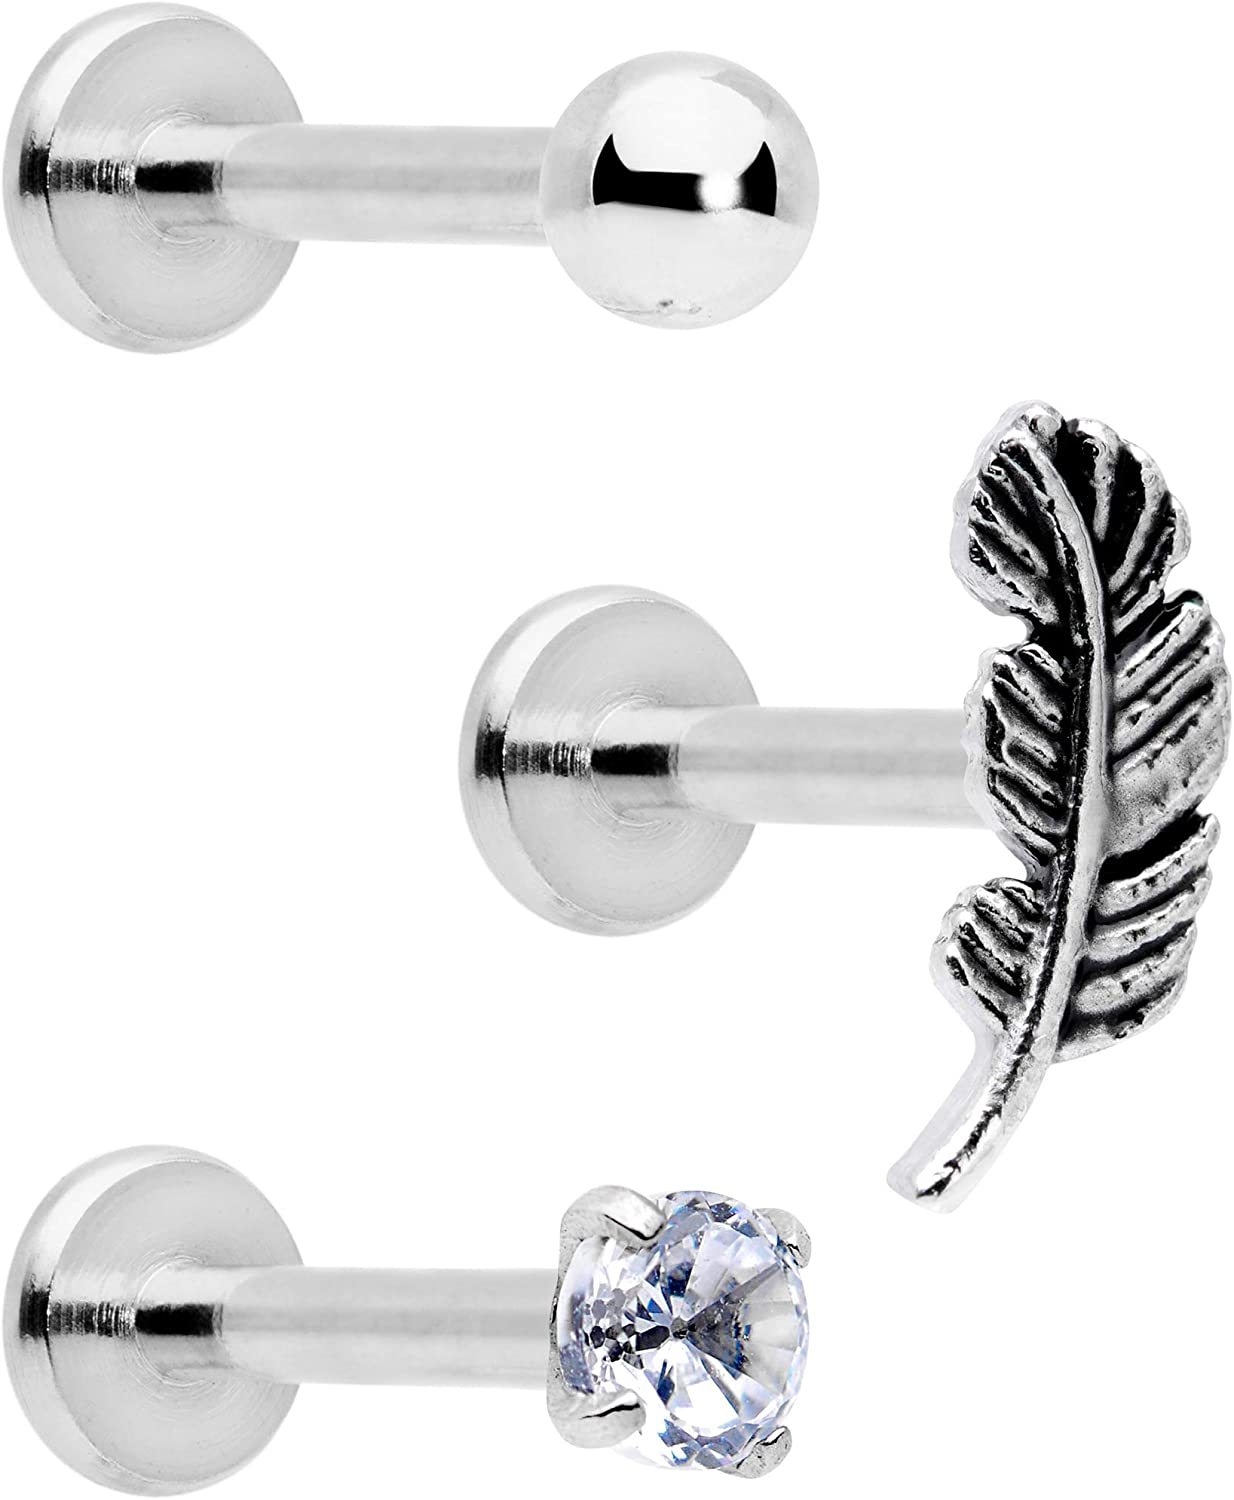 Body Candy 3Pc 16G 316L Steel Clear Accent Feather Internally Threaded Labret Monroe Lip Ring Tragus Set 8mm